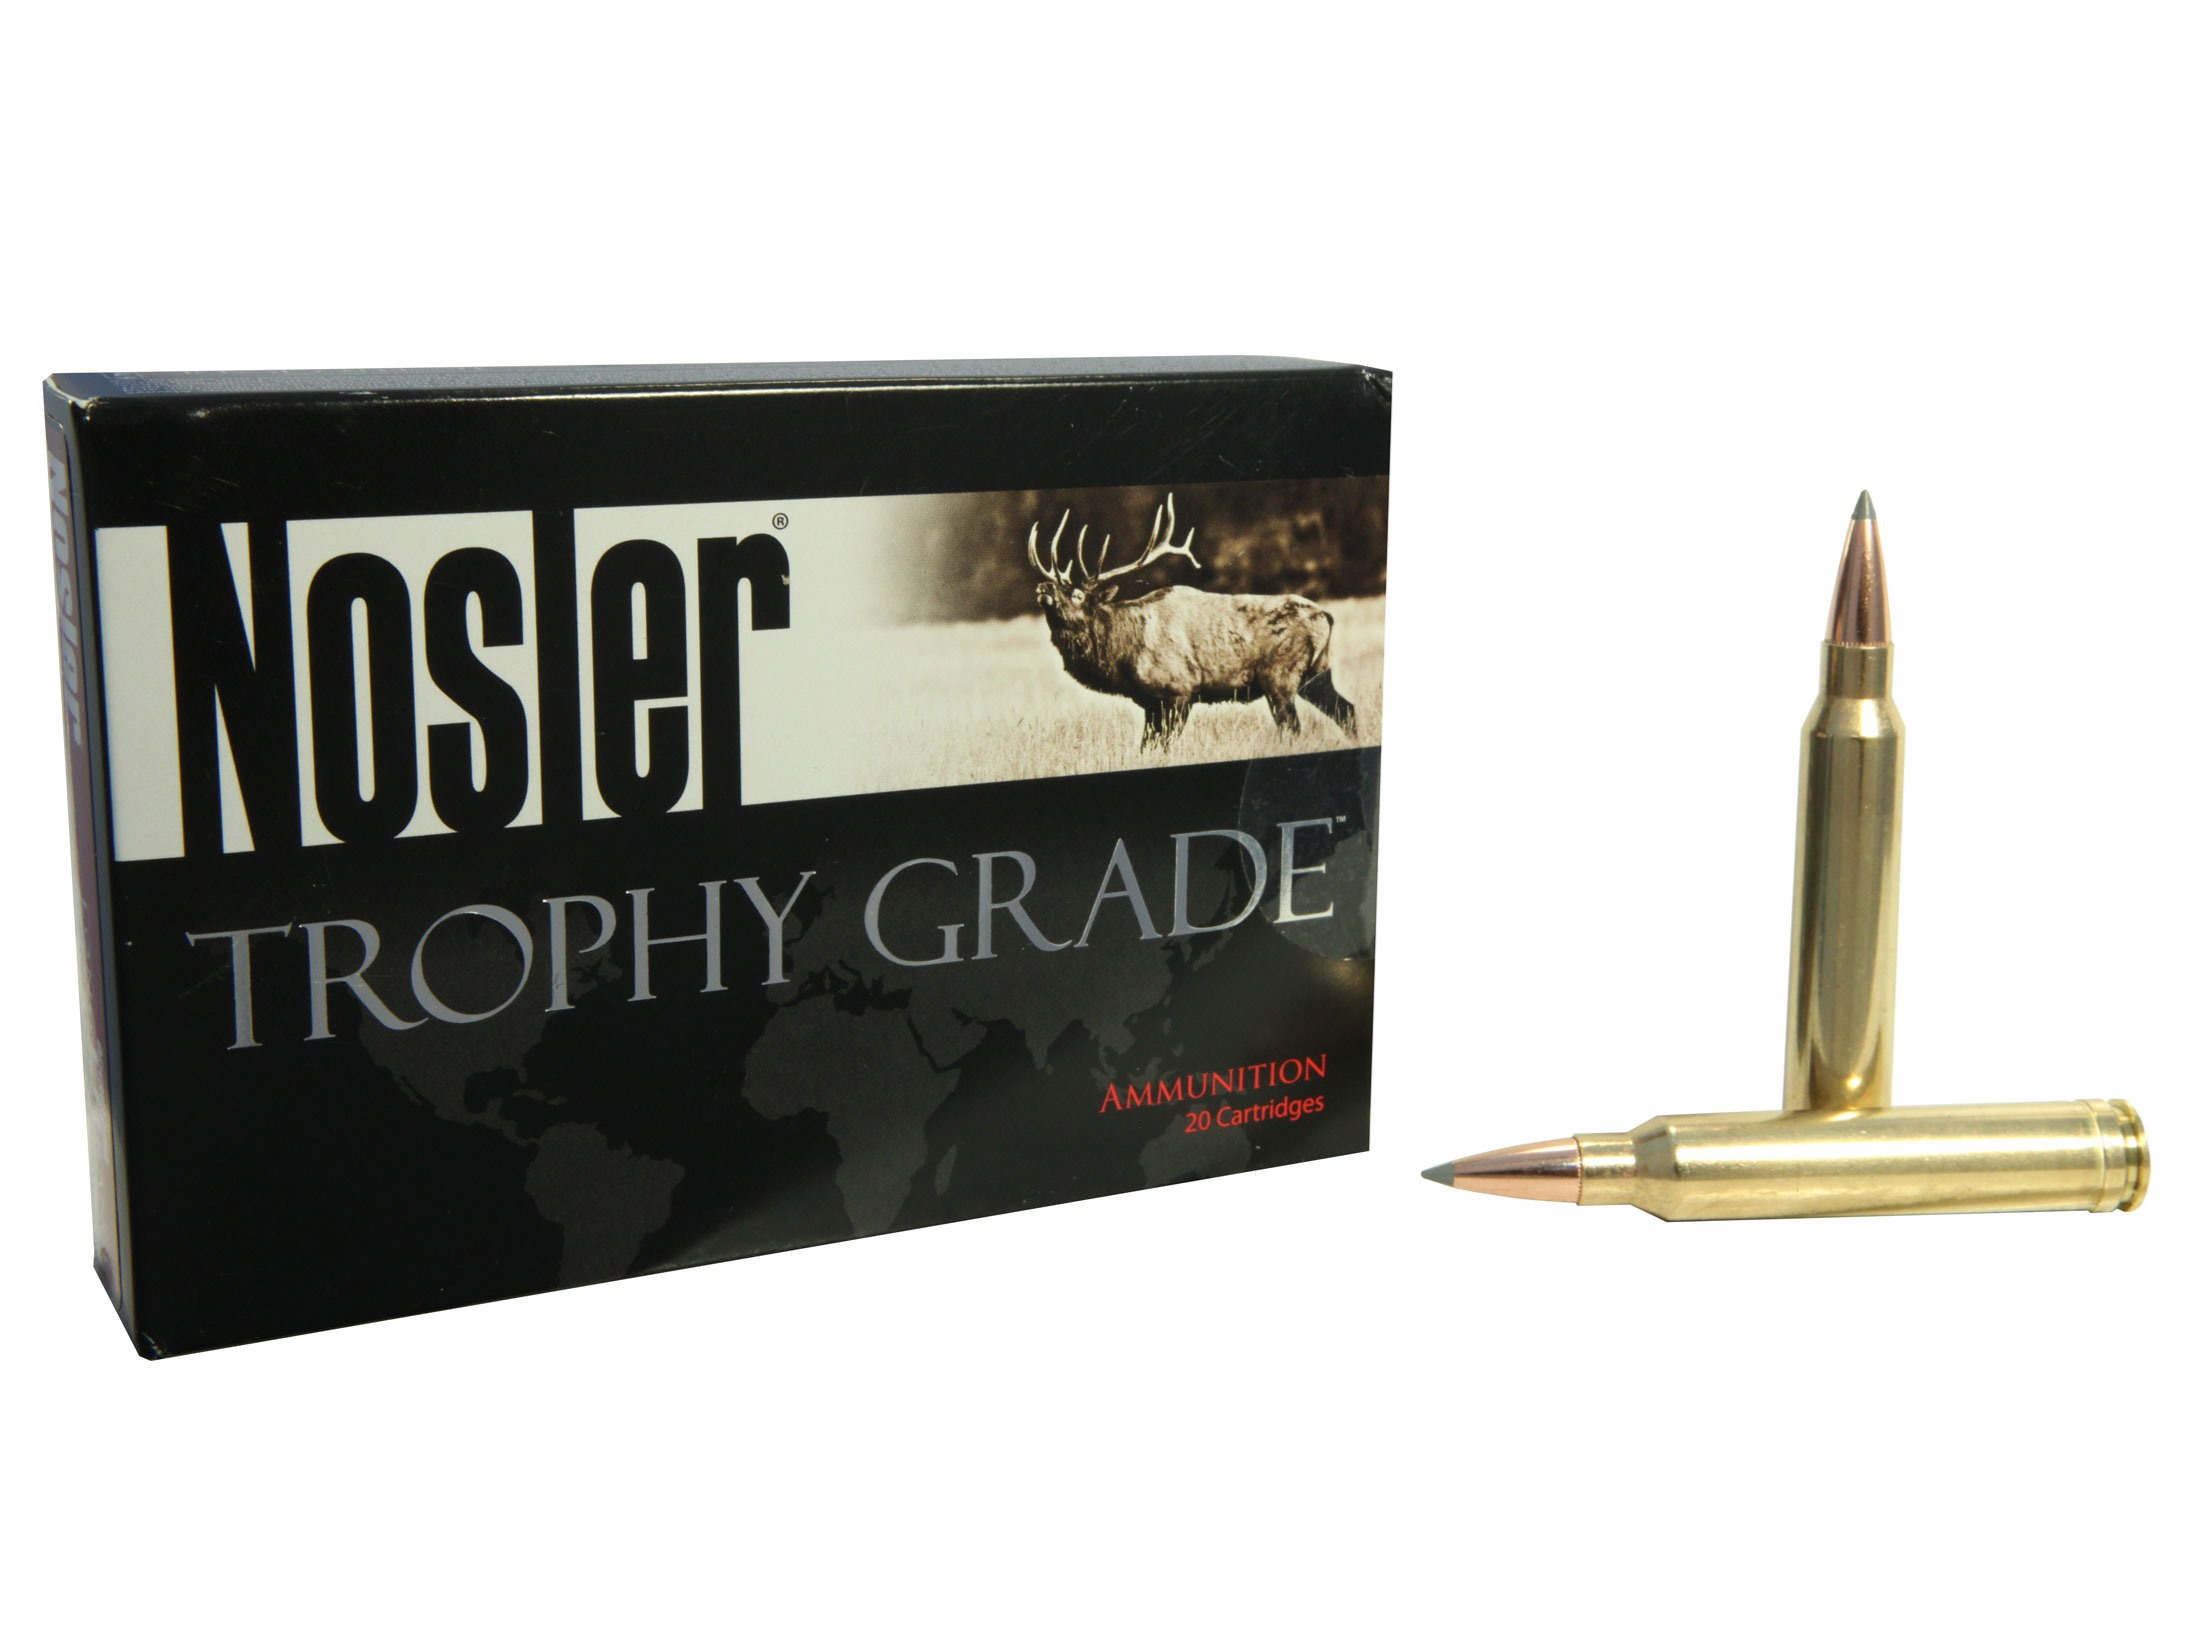 Trophy Grade 300 Winchester Magnum 190 Grain AccuBond Long Range Ammunition, 20 Rounds Per Box